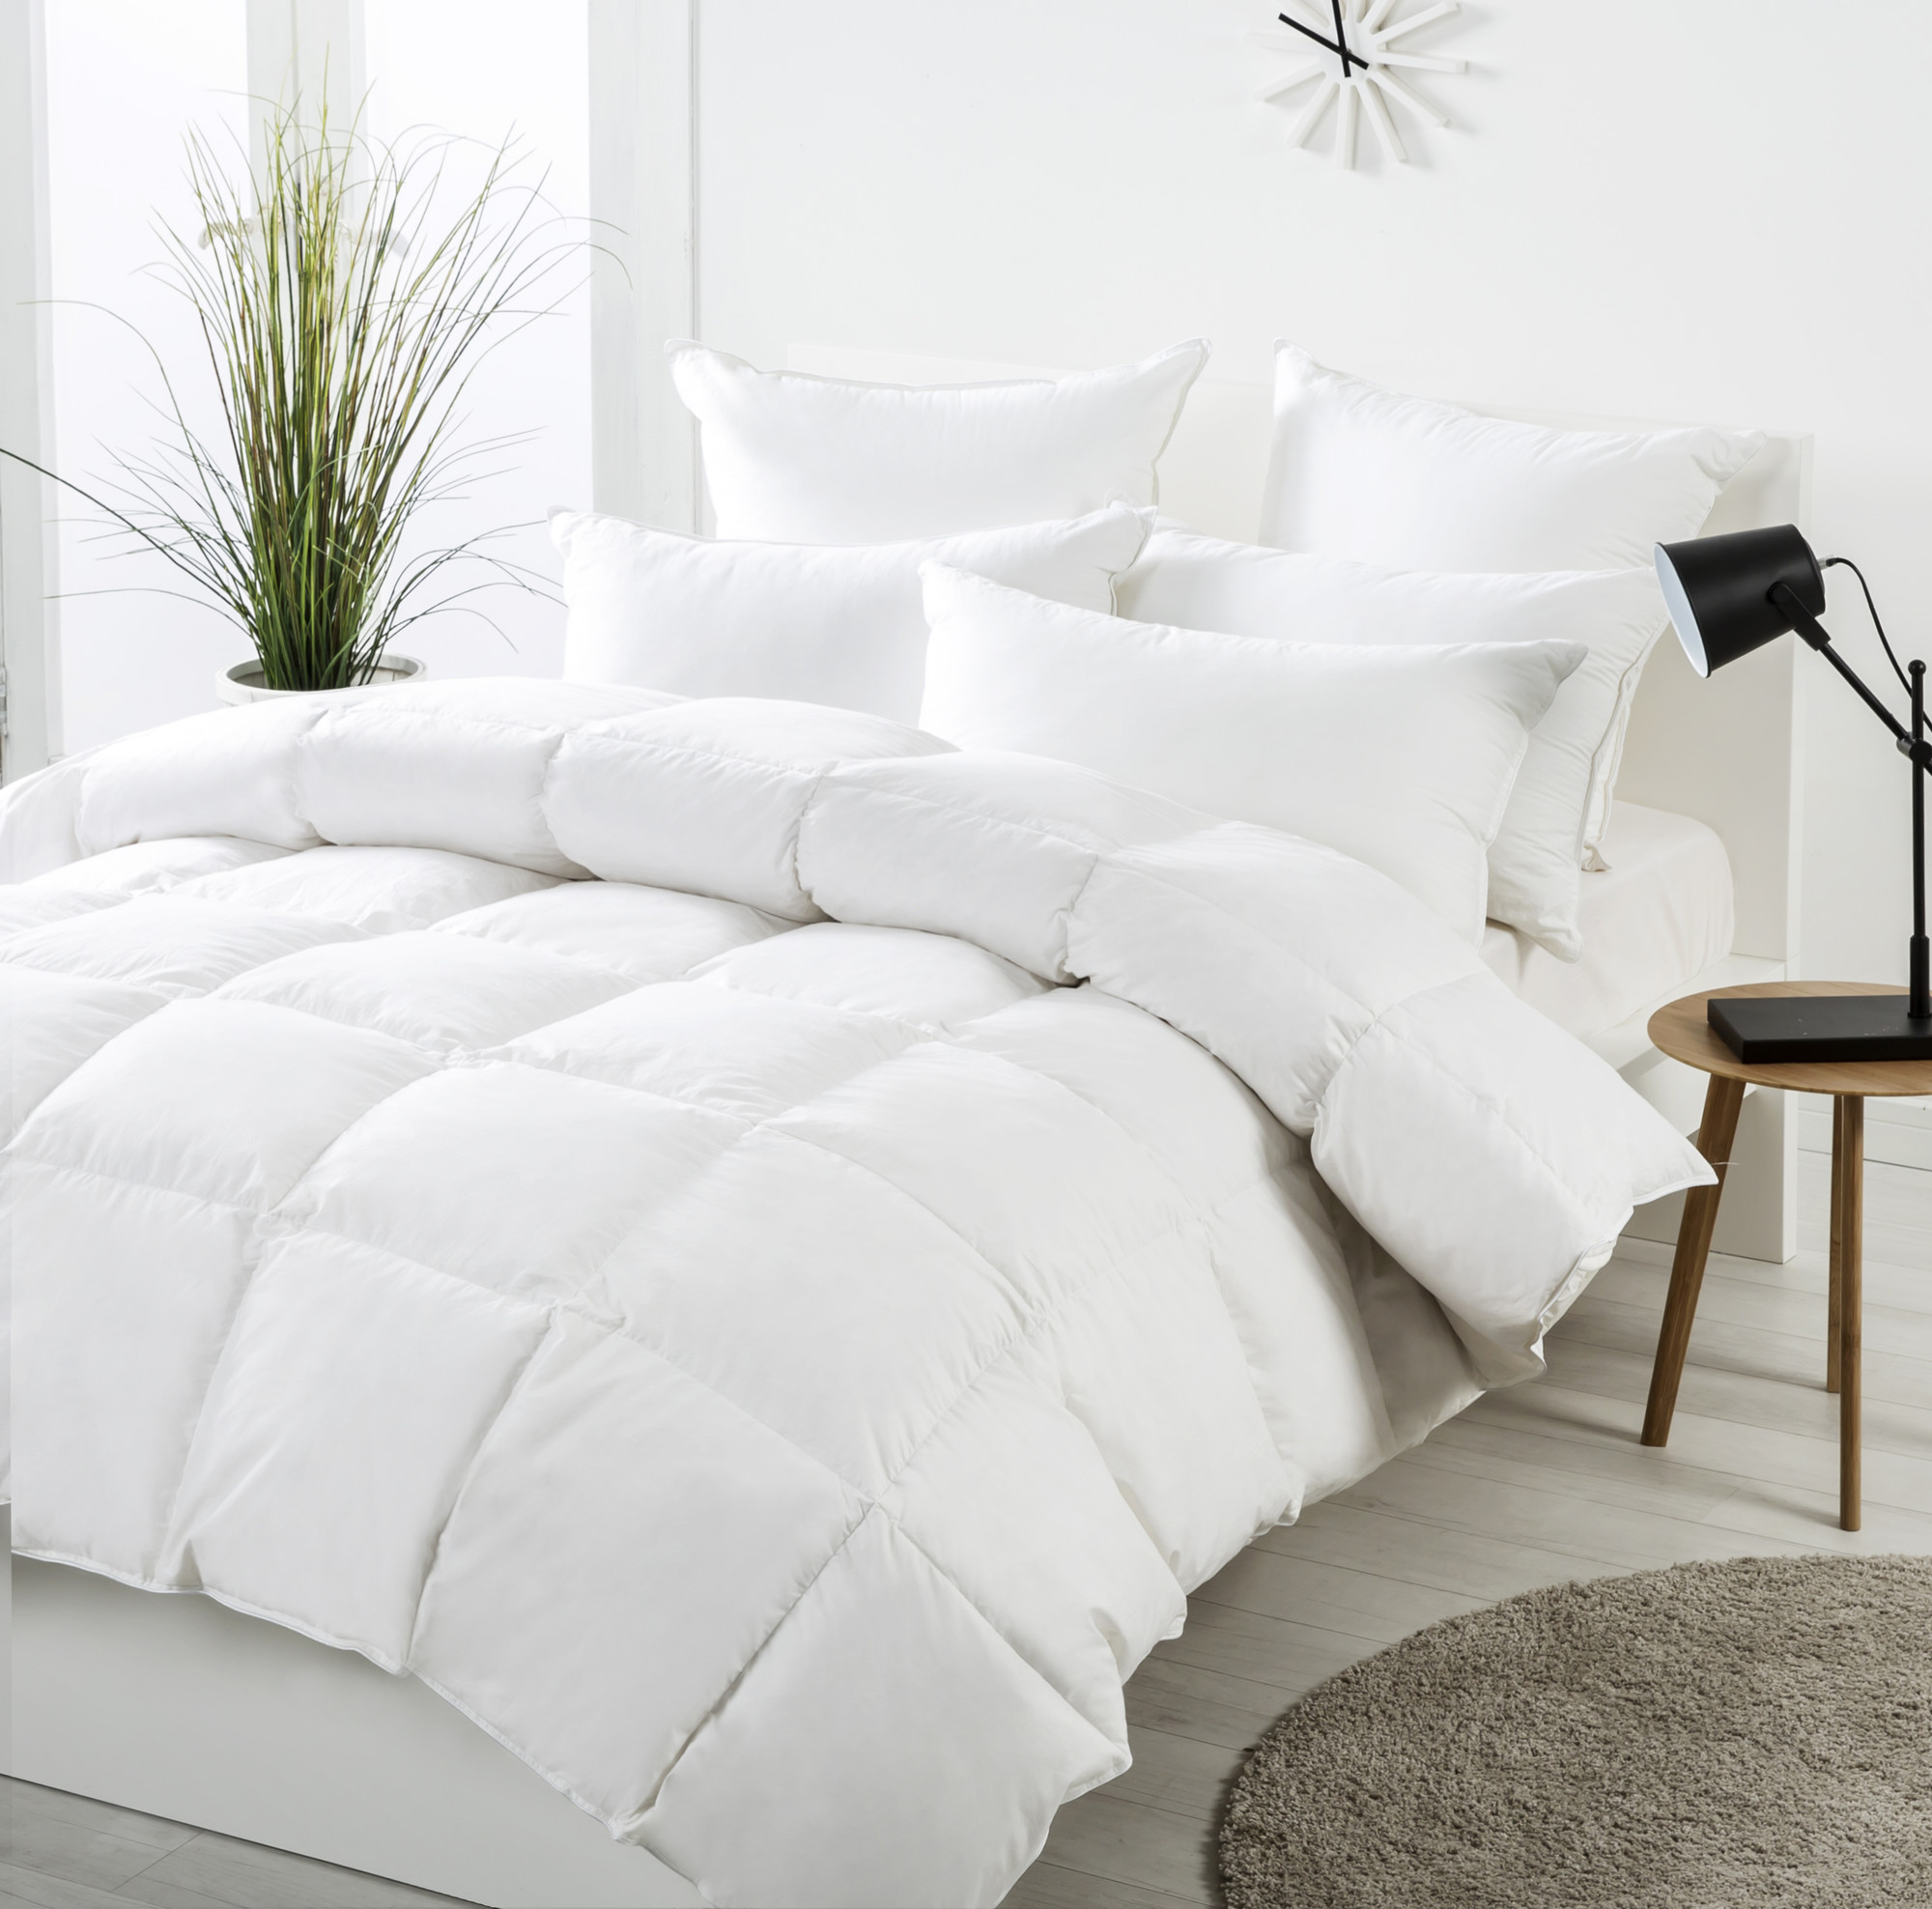 panelled listed reviews feather duvet manufacturer sku the following white is dreamaker sometimes quilt duck temple webster also under numbers